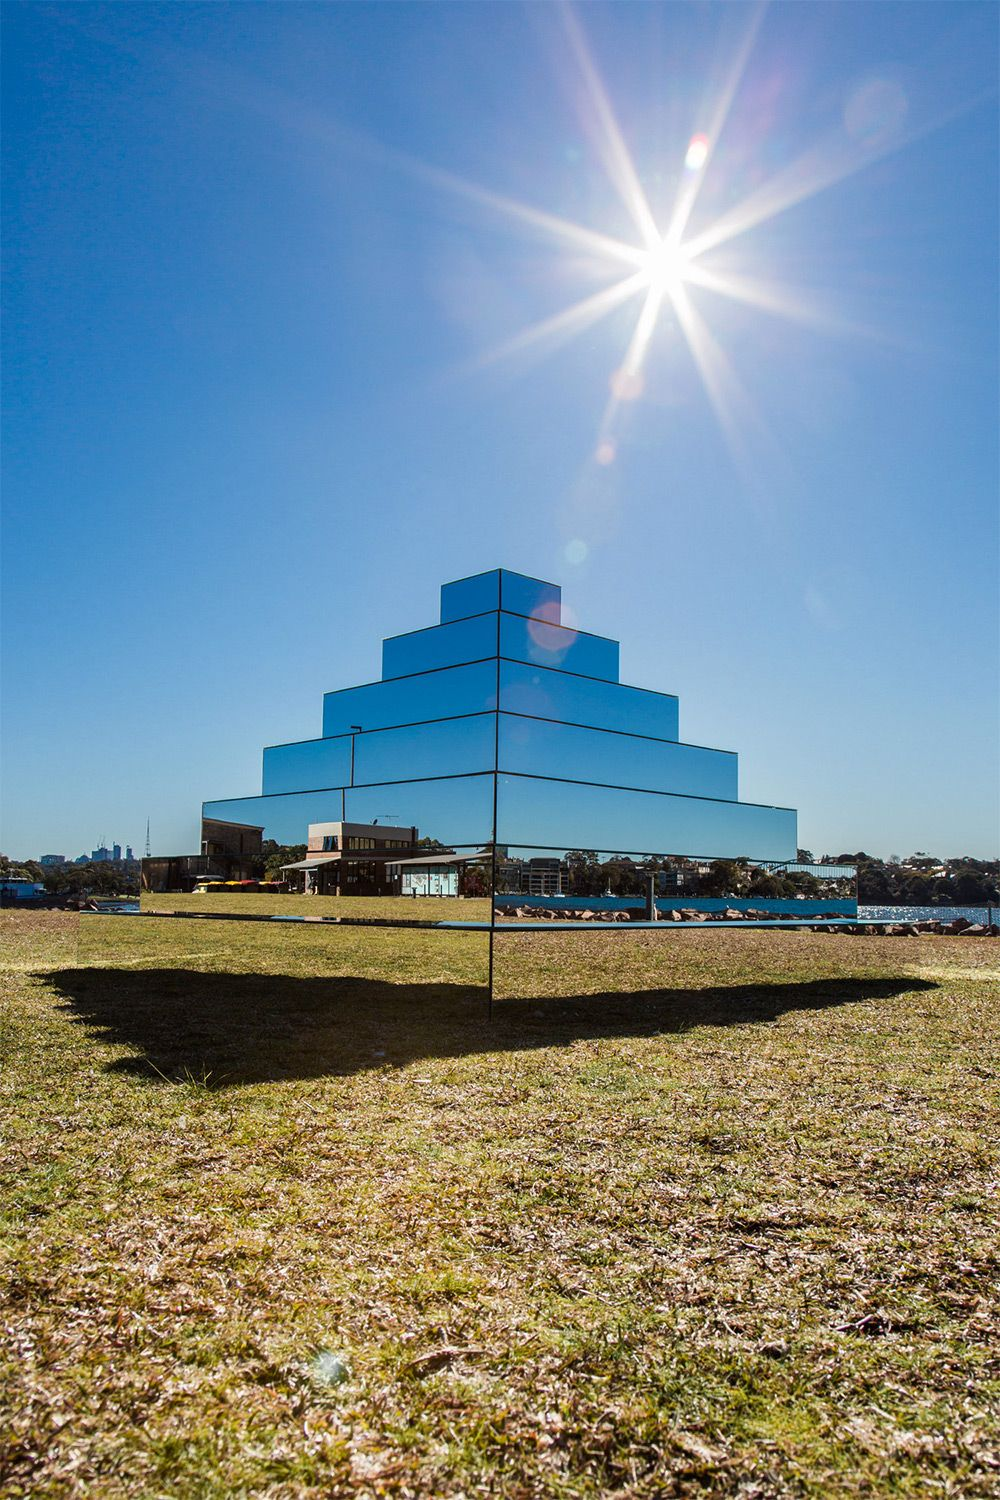 Artist Shirin Abedinirad (previously) just completed work on her latest sculpture, Mirrored Ziggurat, a pyramid of mirrors resting near a bay in Sydney, Australia as part of the Underbelly Arts Festival. Like her earlier mirror works, the Iranian artist is fascinated by stitching the sky to the grou